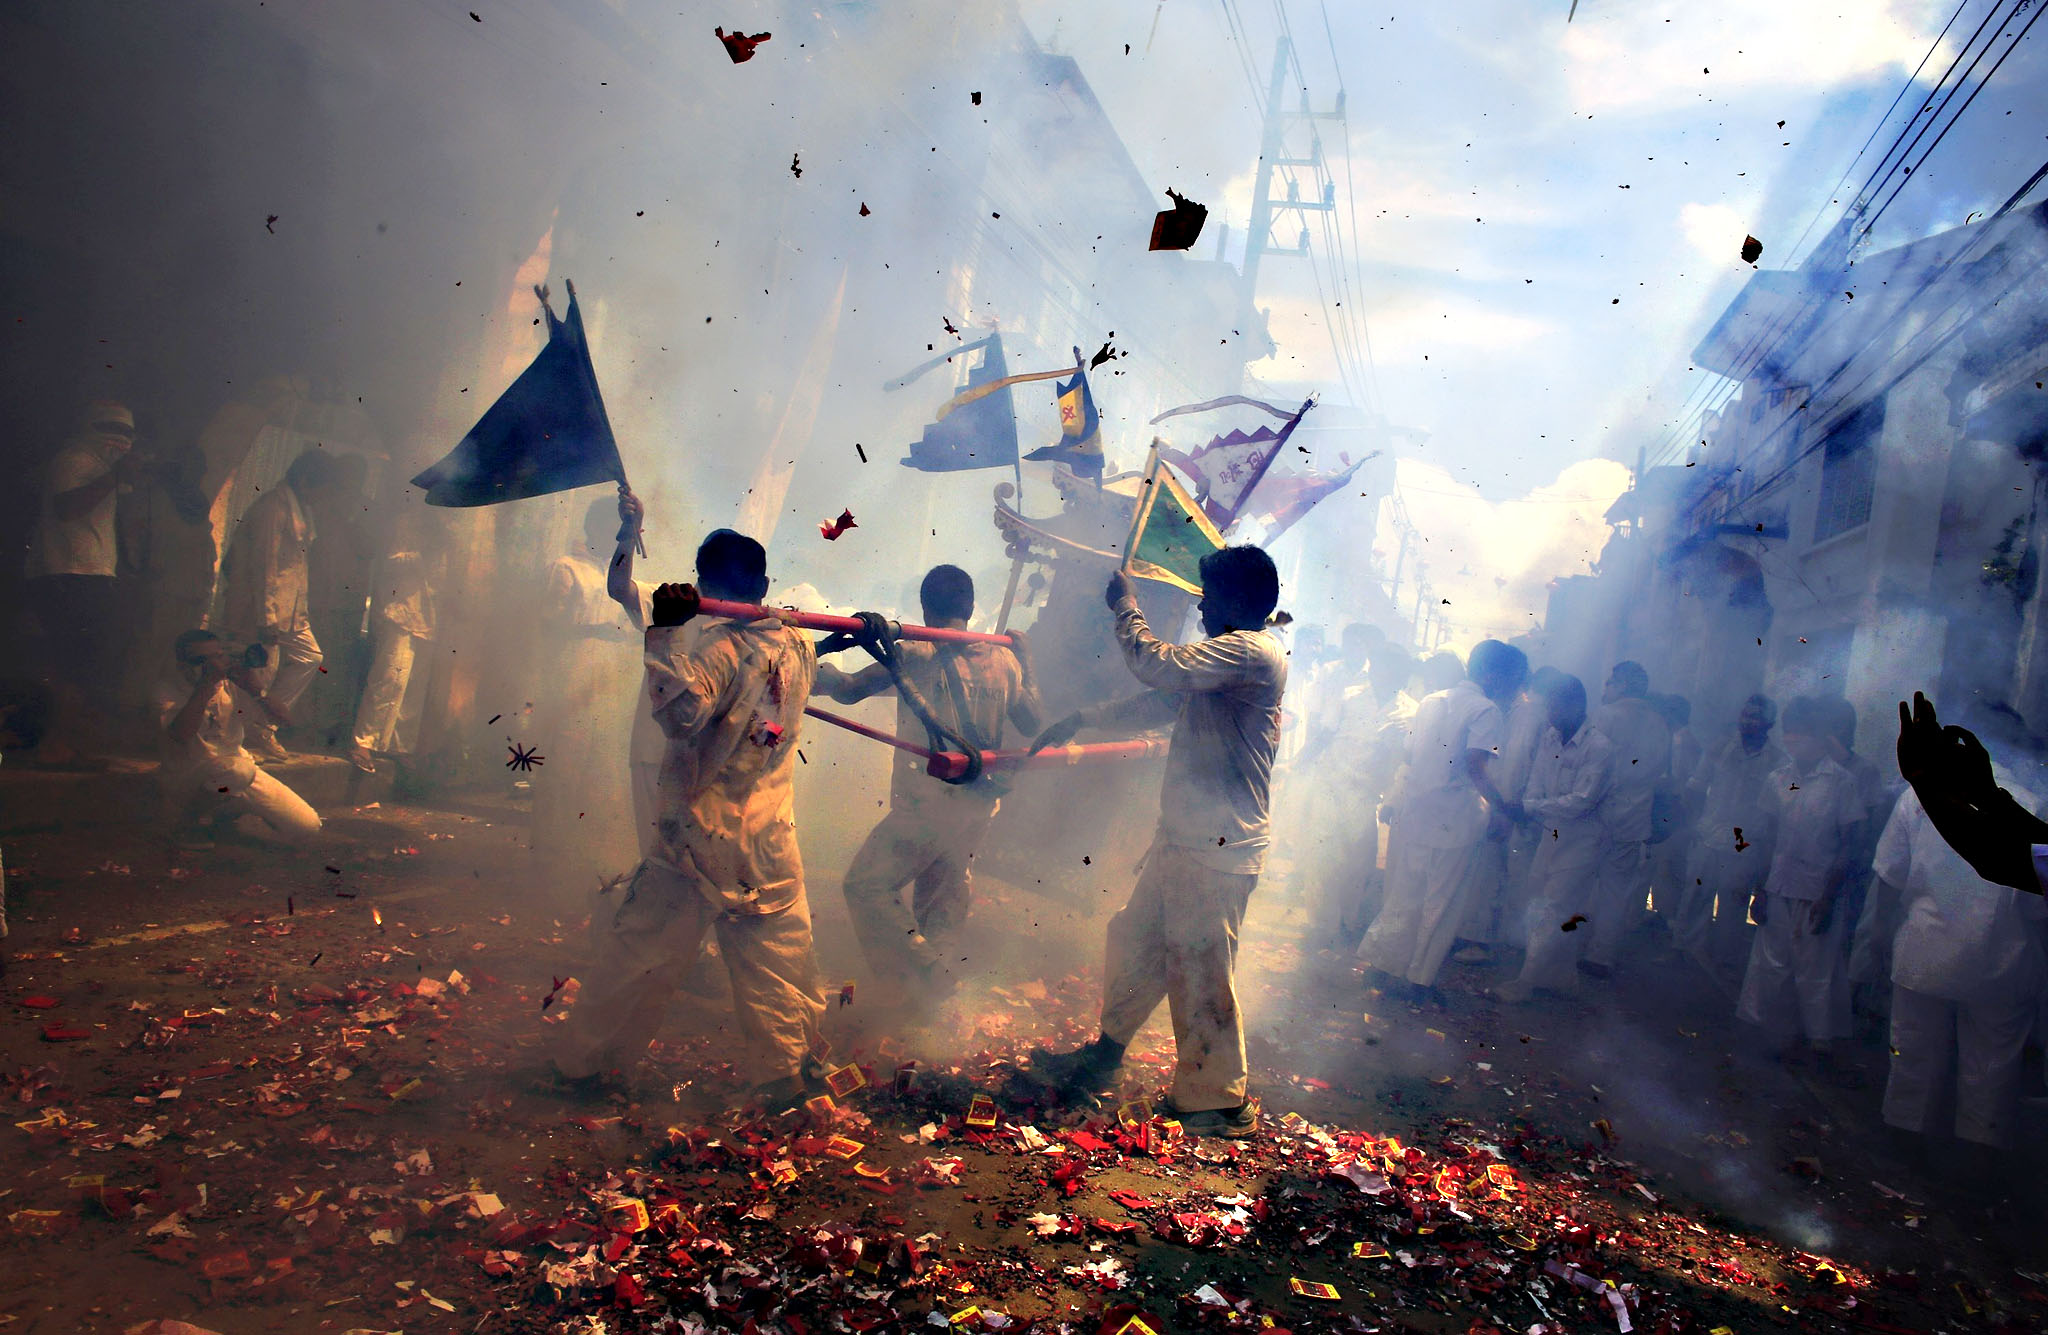 Devotees of Chao Pho Kuan U shrine carry a statue through exploding firecrackers during a street procession during the annual vegetarian festival in Phang Nga October 10, 2013. The festival, featuring face-piercing, spirit mediums and strict vegetarianism celebrates the local Chinese community's belief that abstinence from meat and various stimulants during the ninth lunar month of the Chinese calendar will help them obtain good health and peace of mind.